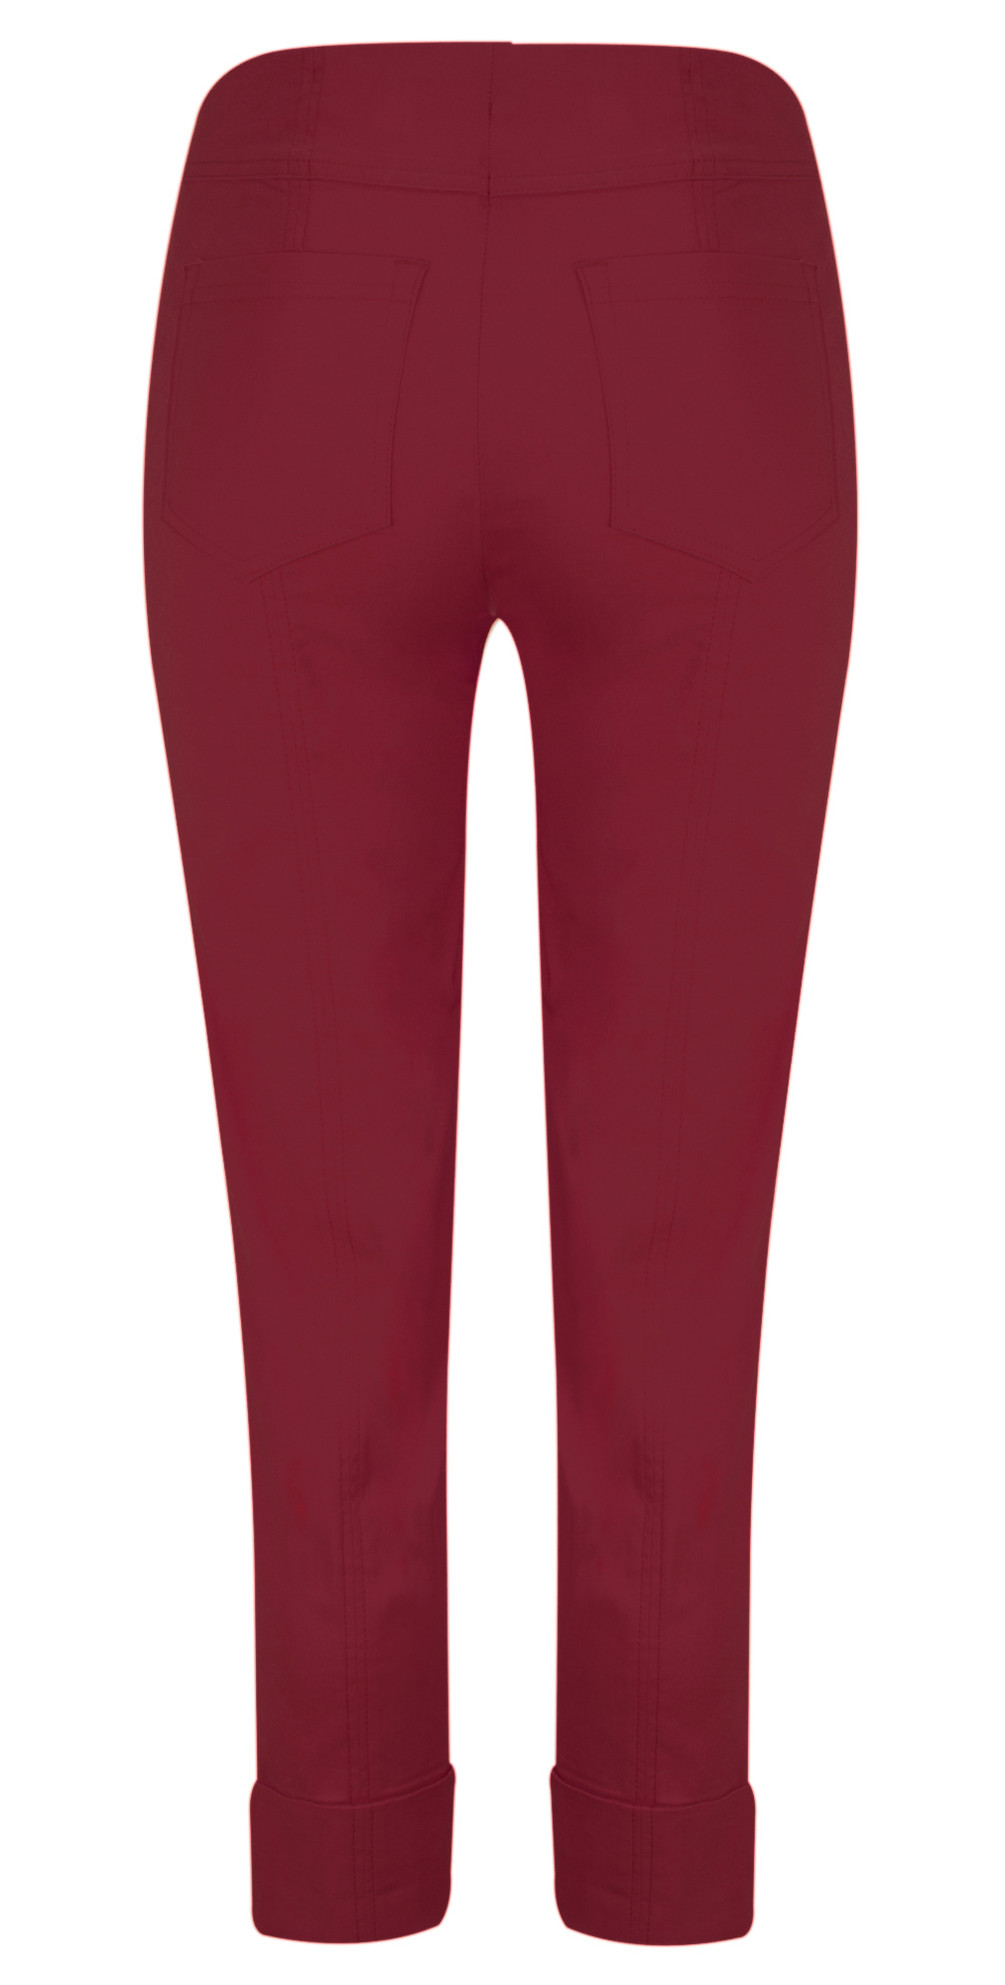 Bella 7/8 Ankle Length Trouser main image